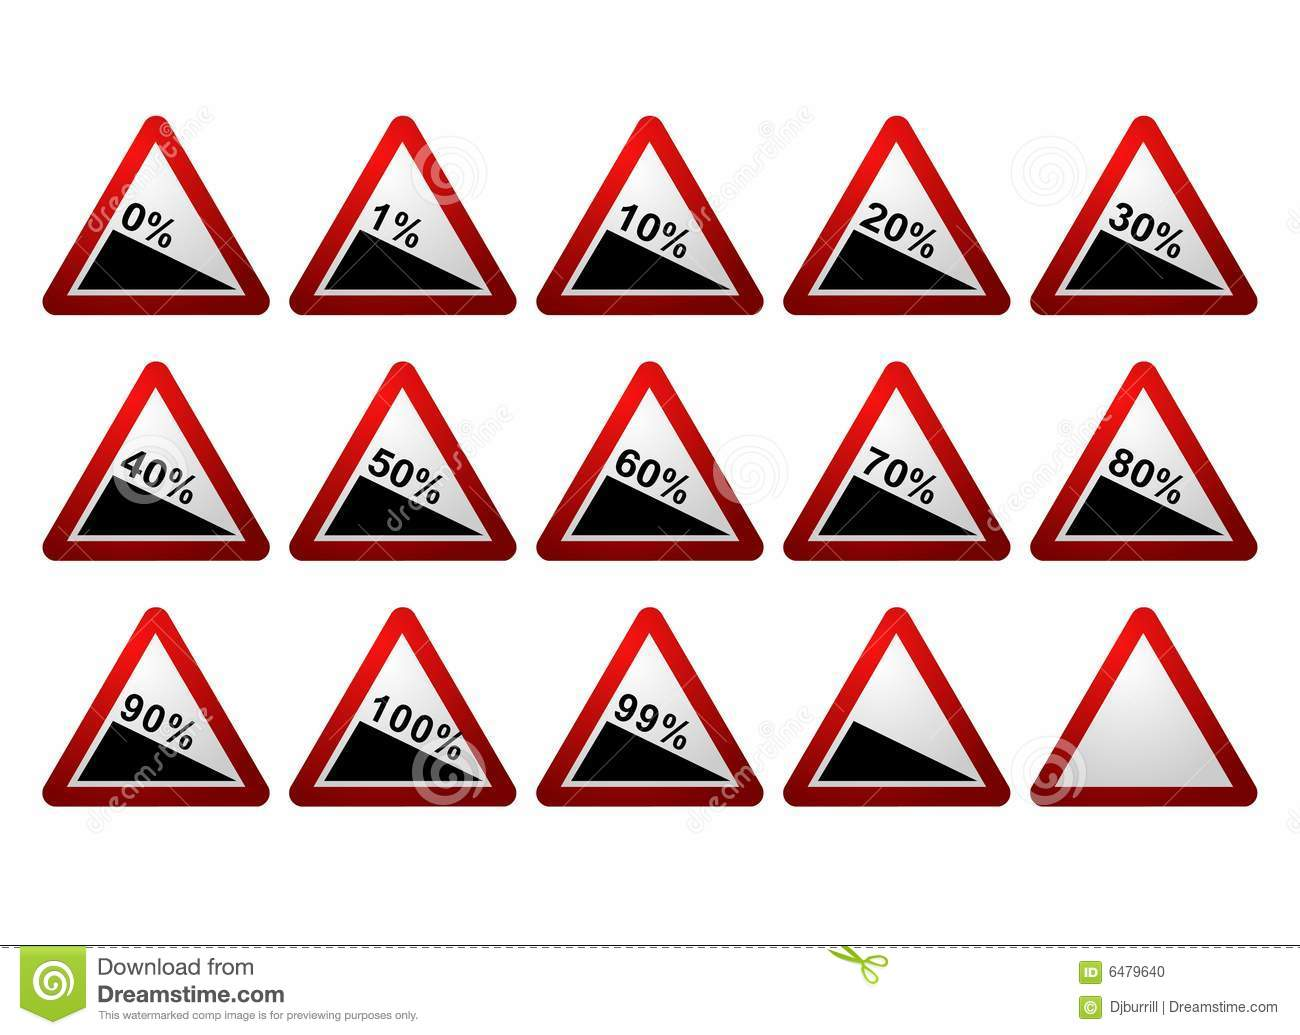 Signes de route de pourcentage photo stock image 6479640 for Calcul de pourcentage de pente